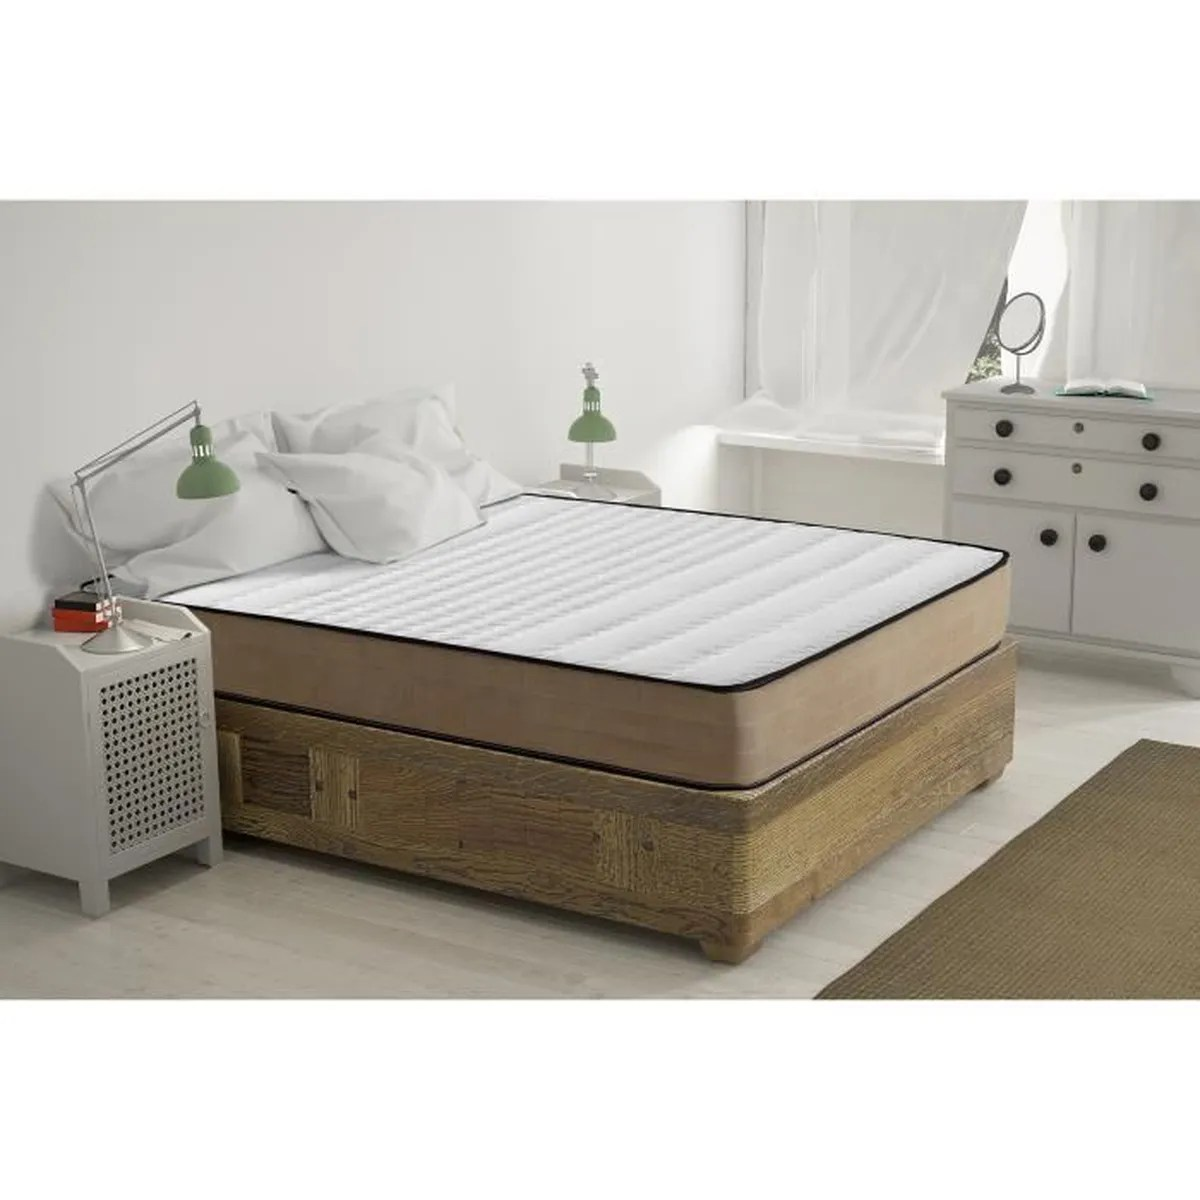 Matelas Relaxation Matelas Relaxation 2x80x190 Achat Vente Pas Cher